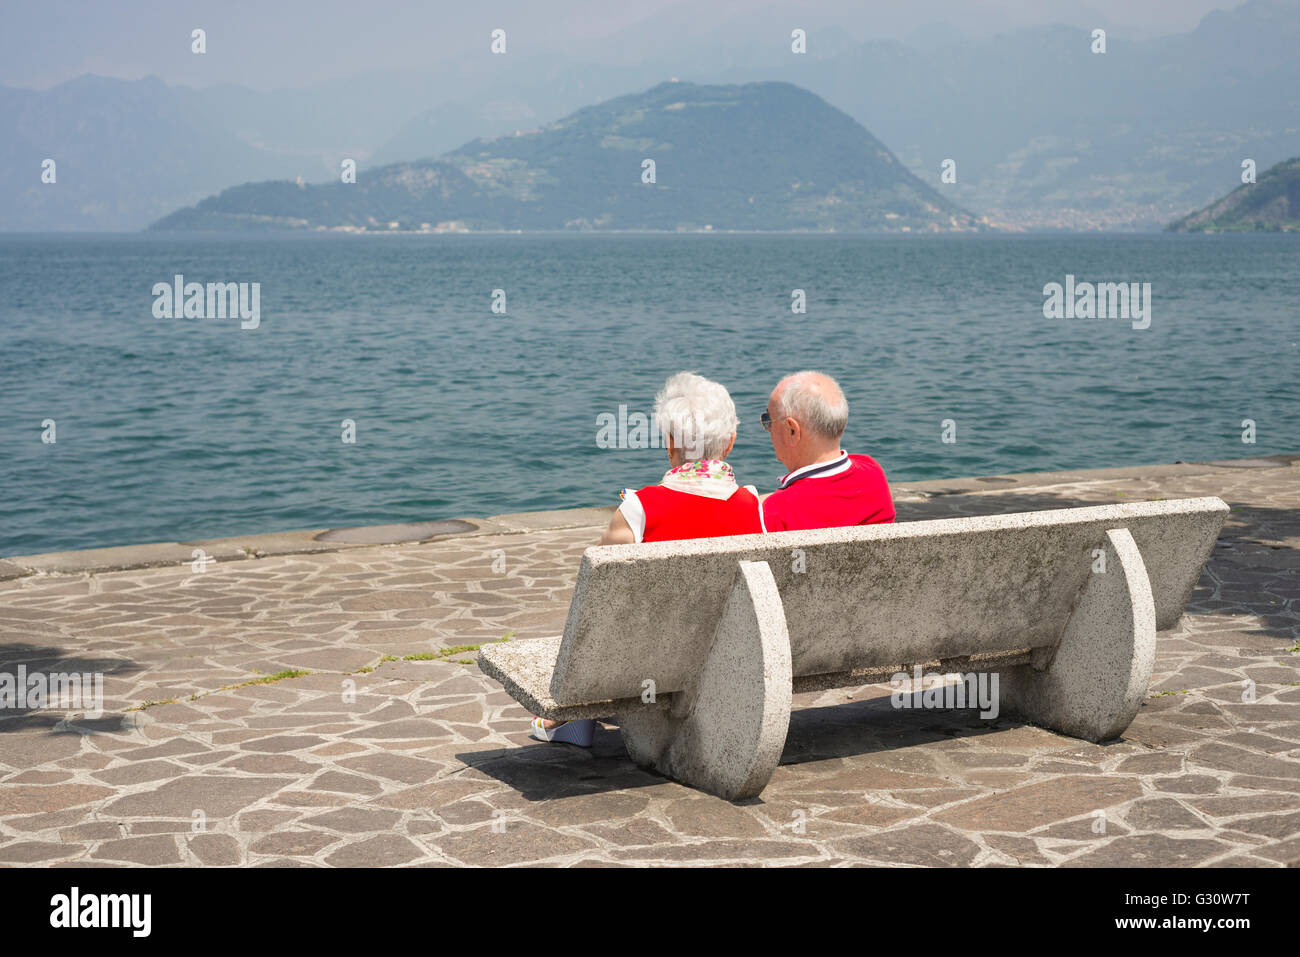 Elderly couple sitting  in the sun on park bench in Iseo on the shore of Lake Iseo, Lombardy, Italy - Stock Image